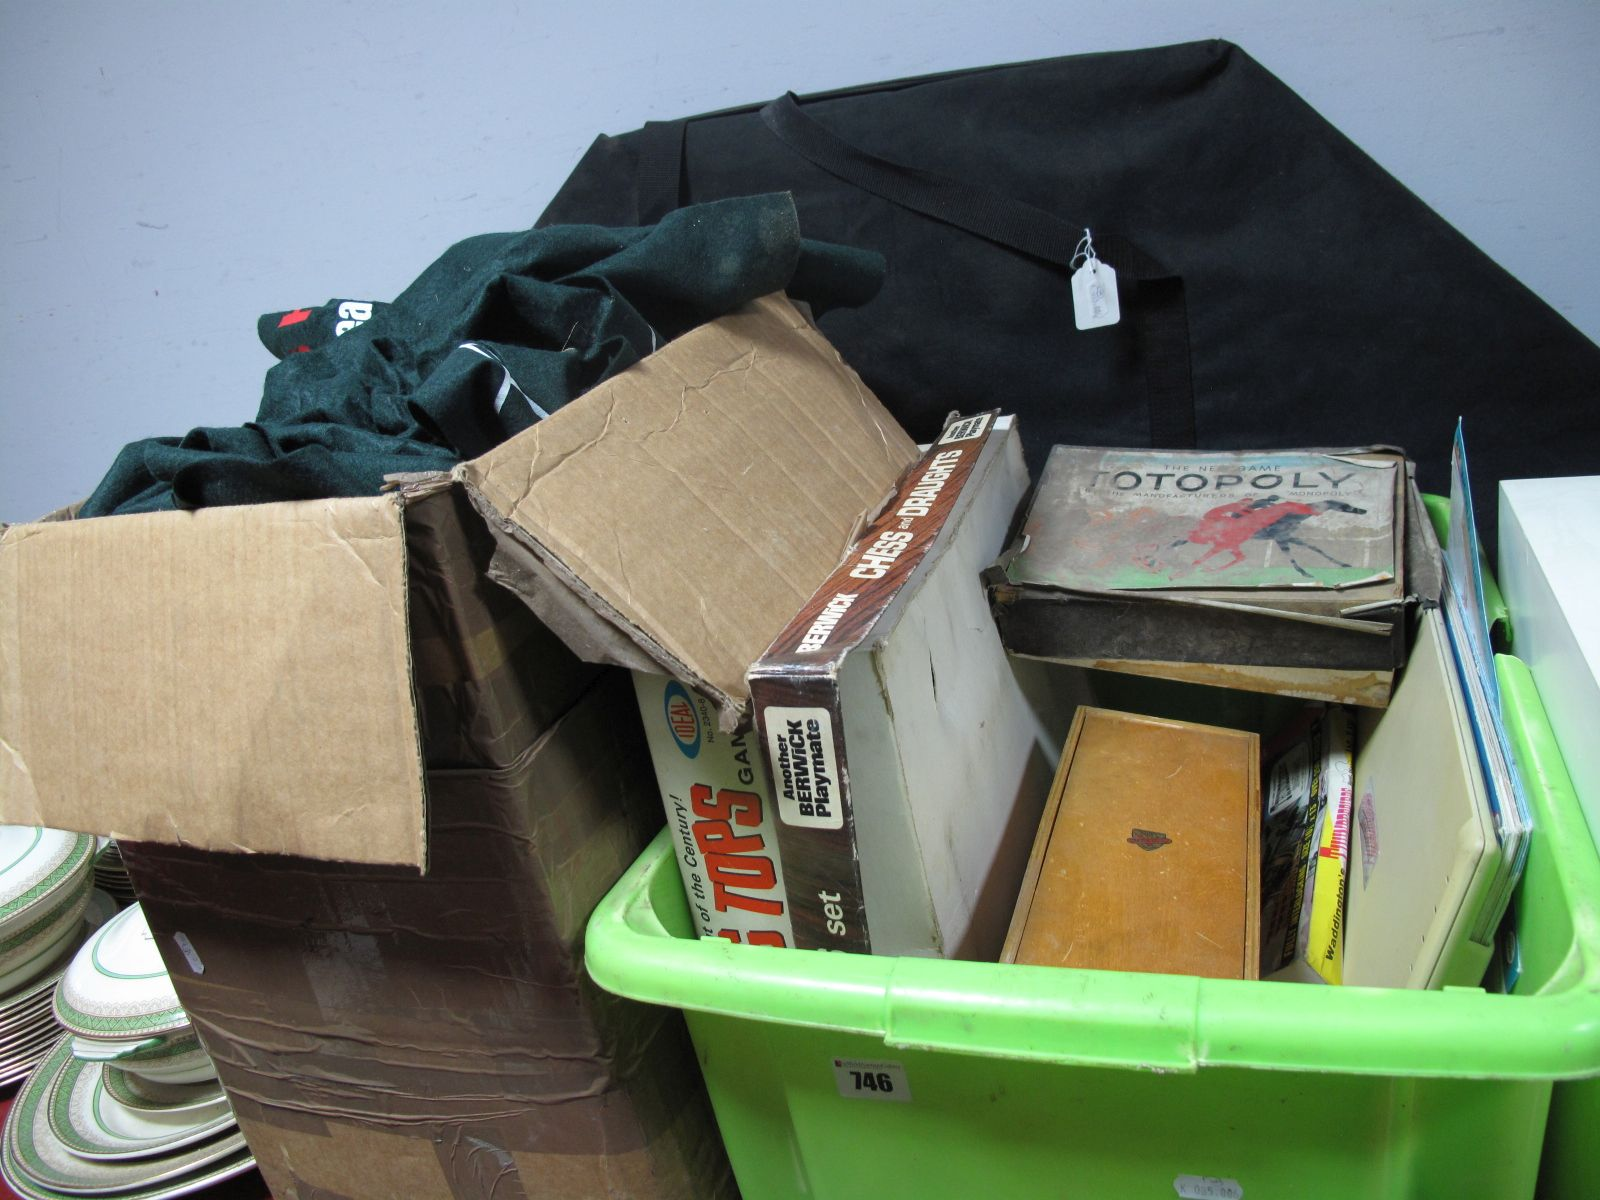 Lot 746 - A Poker Board, in carry case, chips, roulette wheel, Geosafari, Nicoltoys skates, Totopoly, other